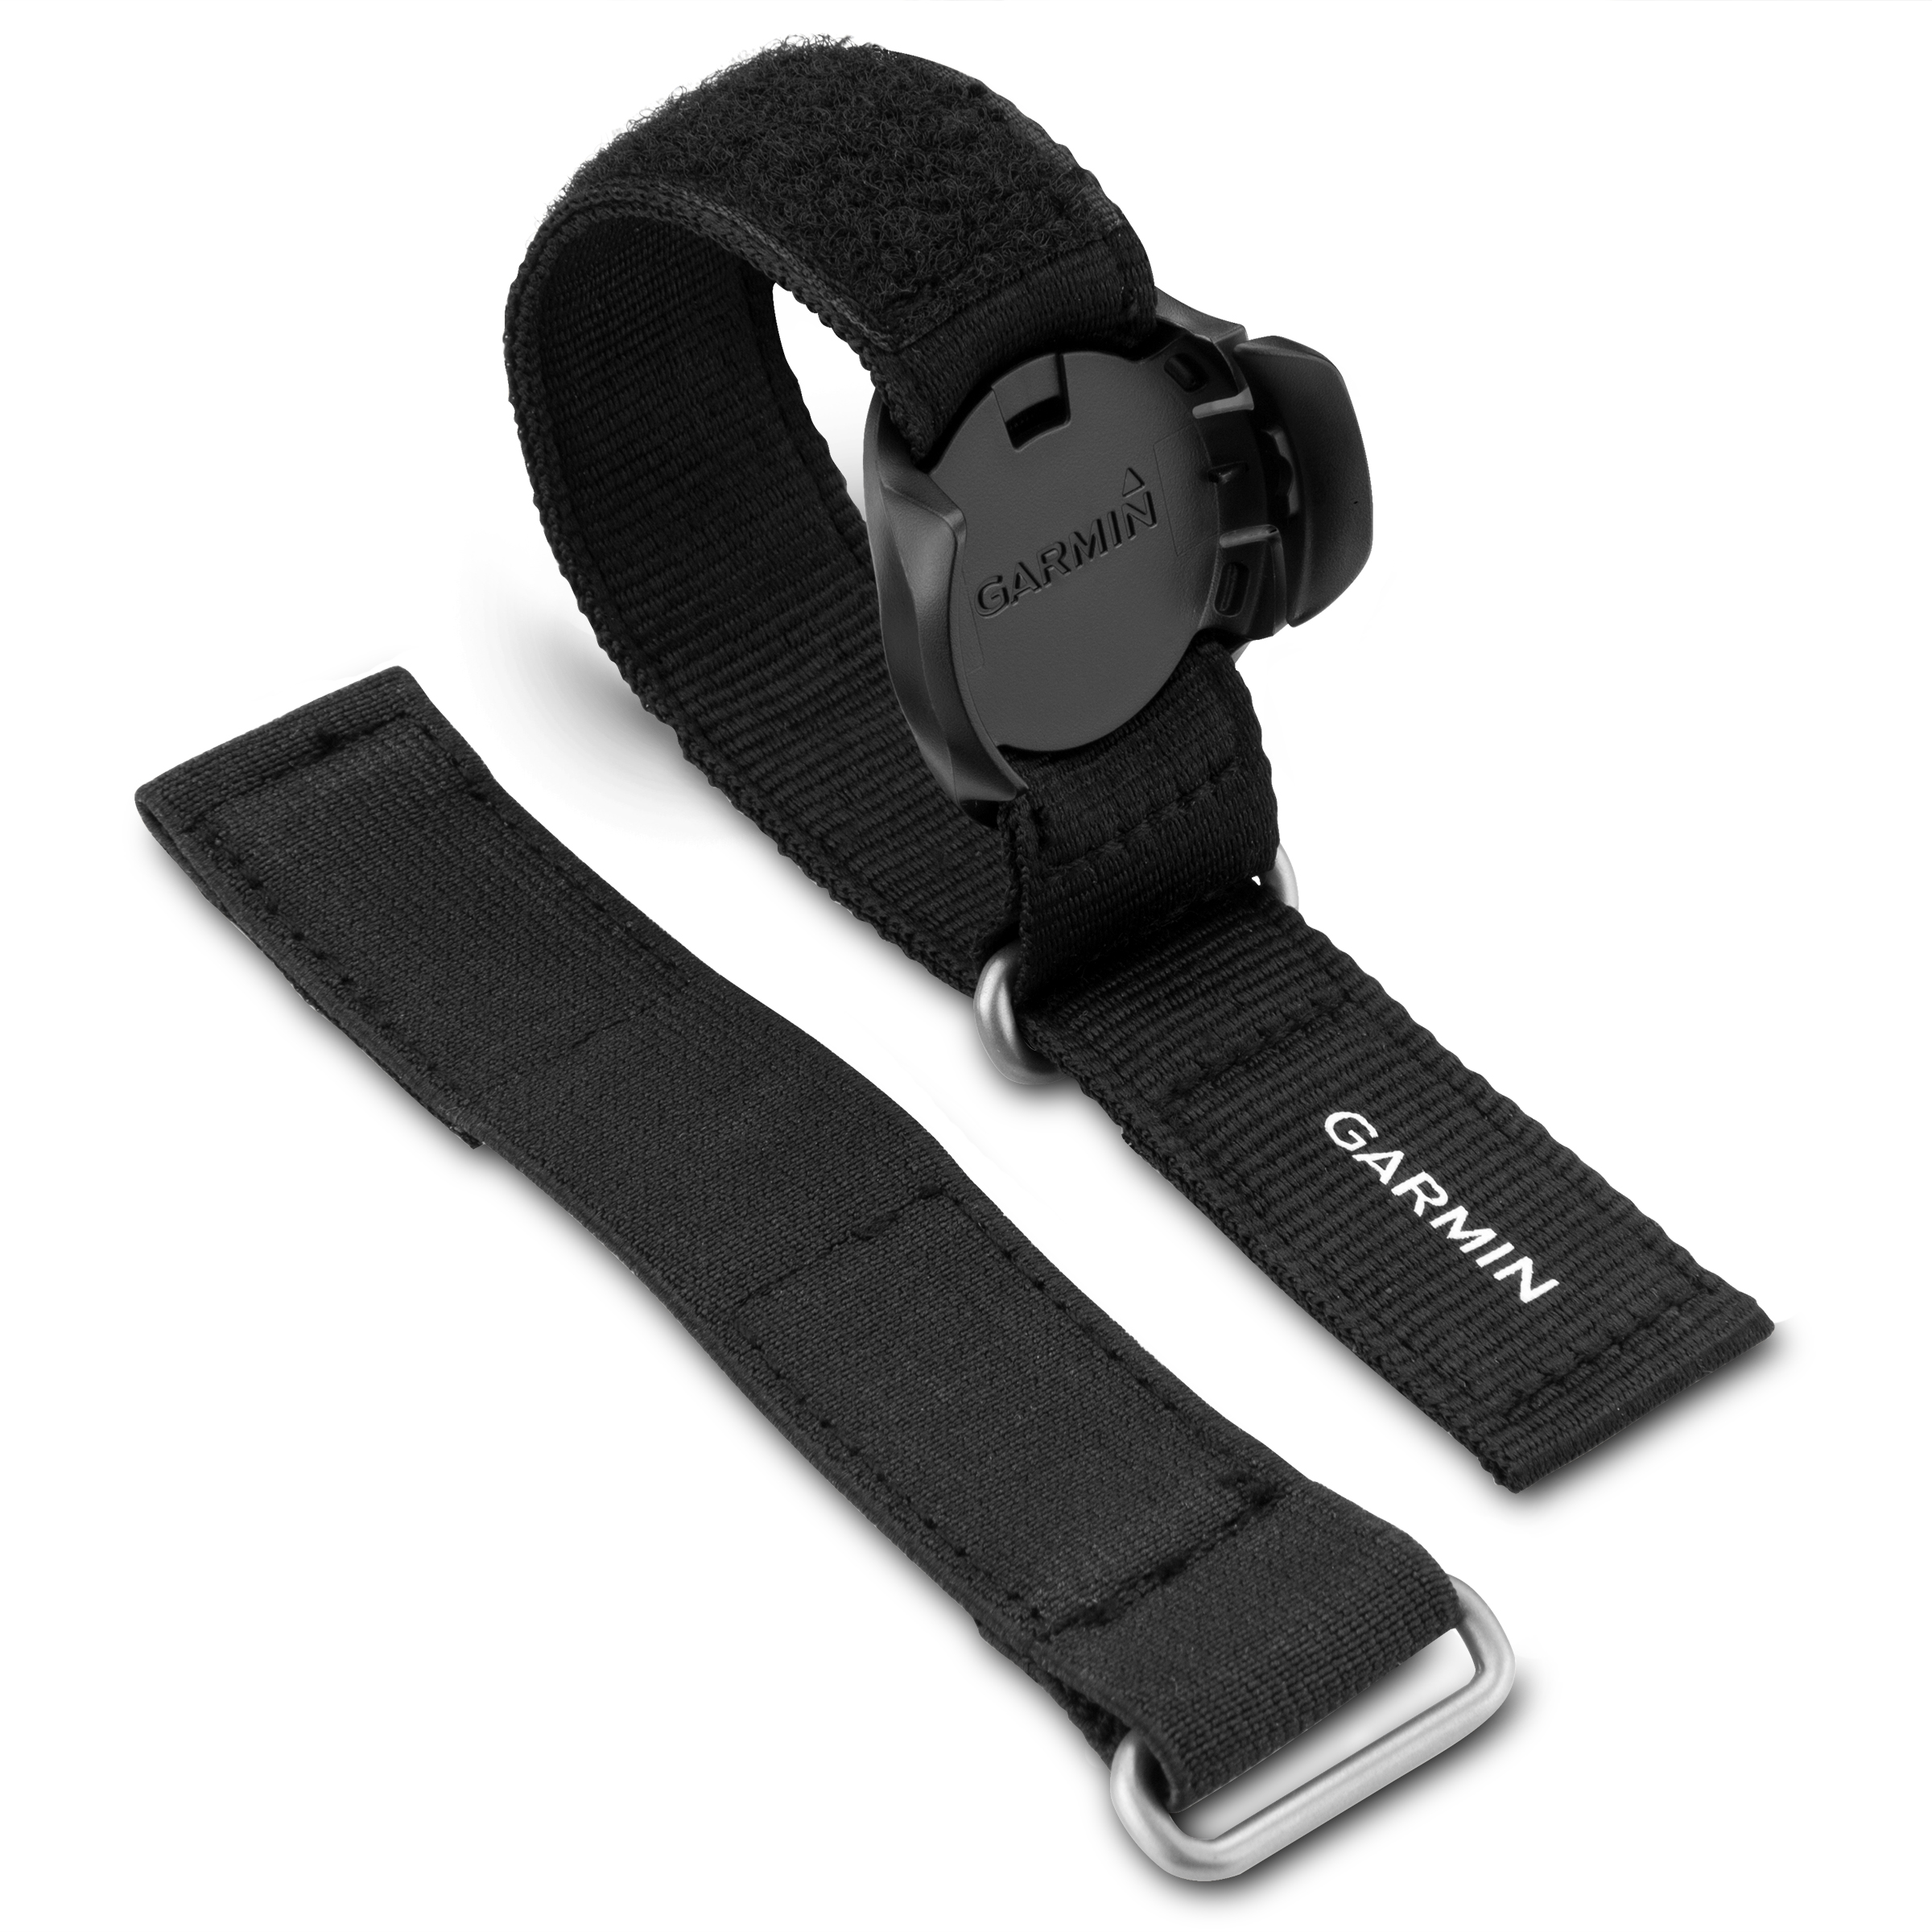 Garmin VIRB Action Camera Wrist Strap for Remote Accessory